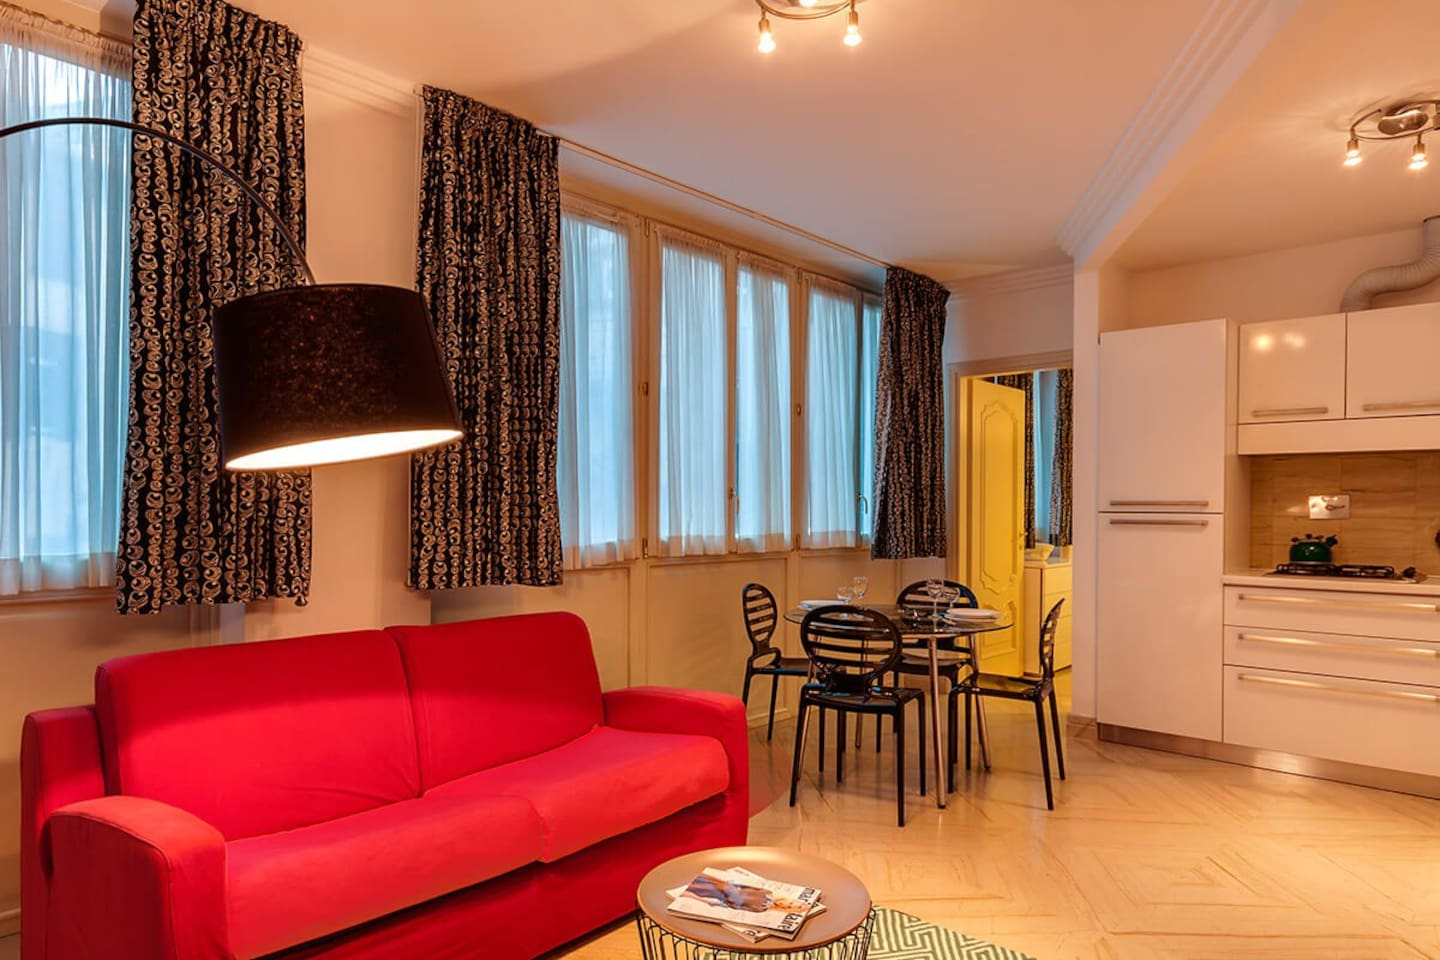 One bedroom holiday apartment close to Spanish Steps and Trevi fountain - Living room